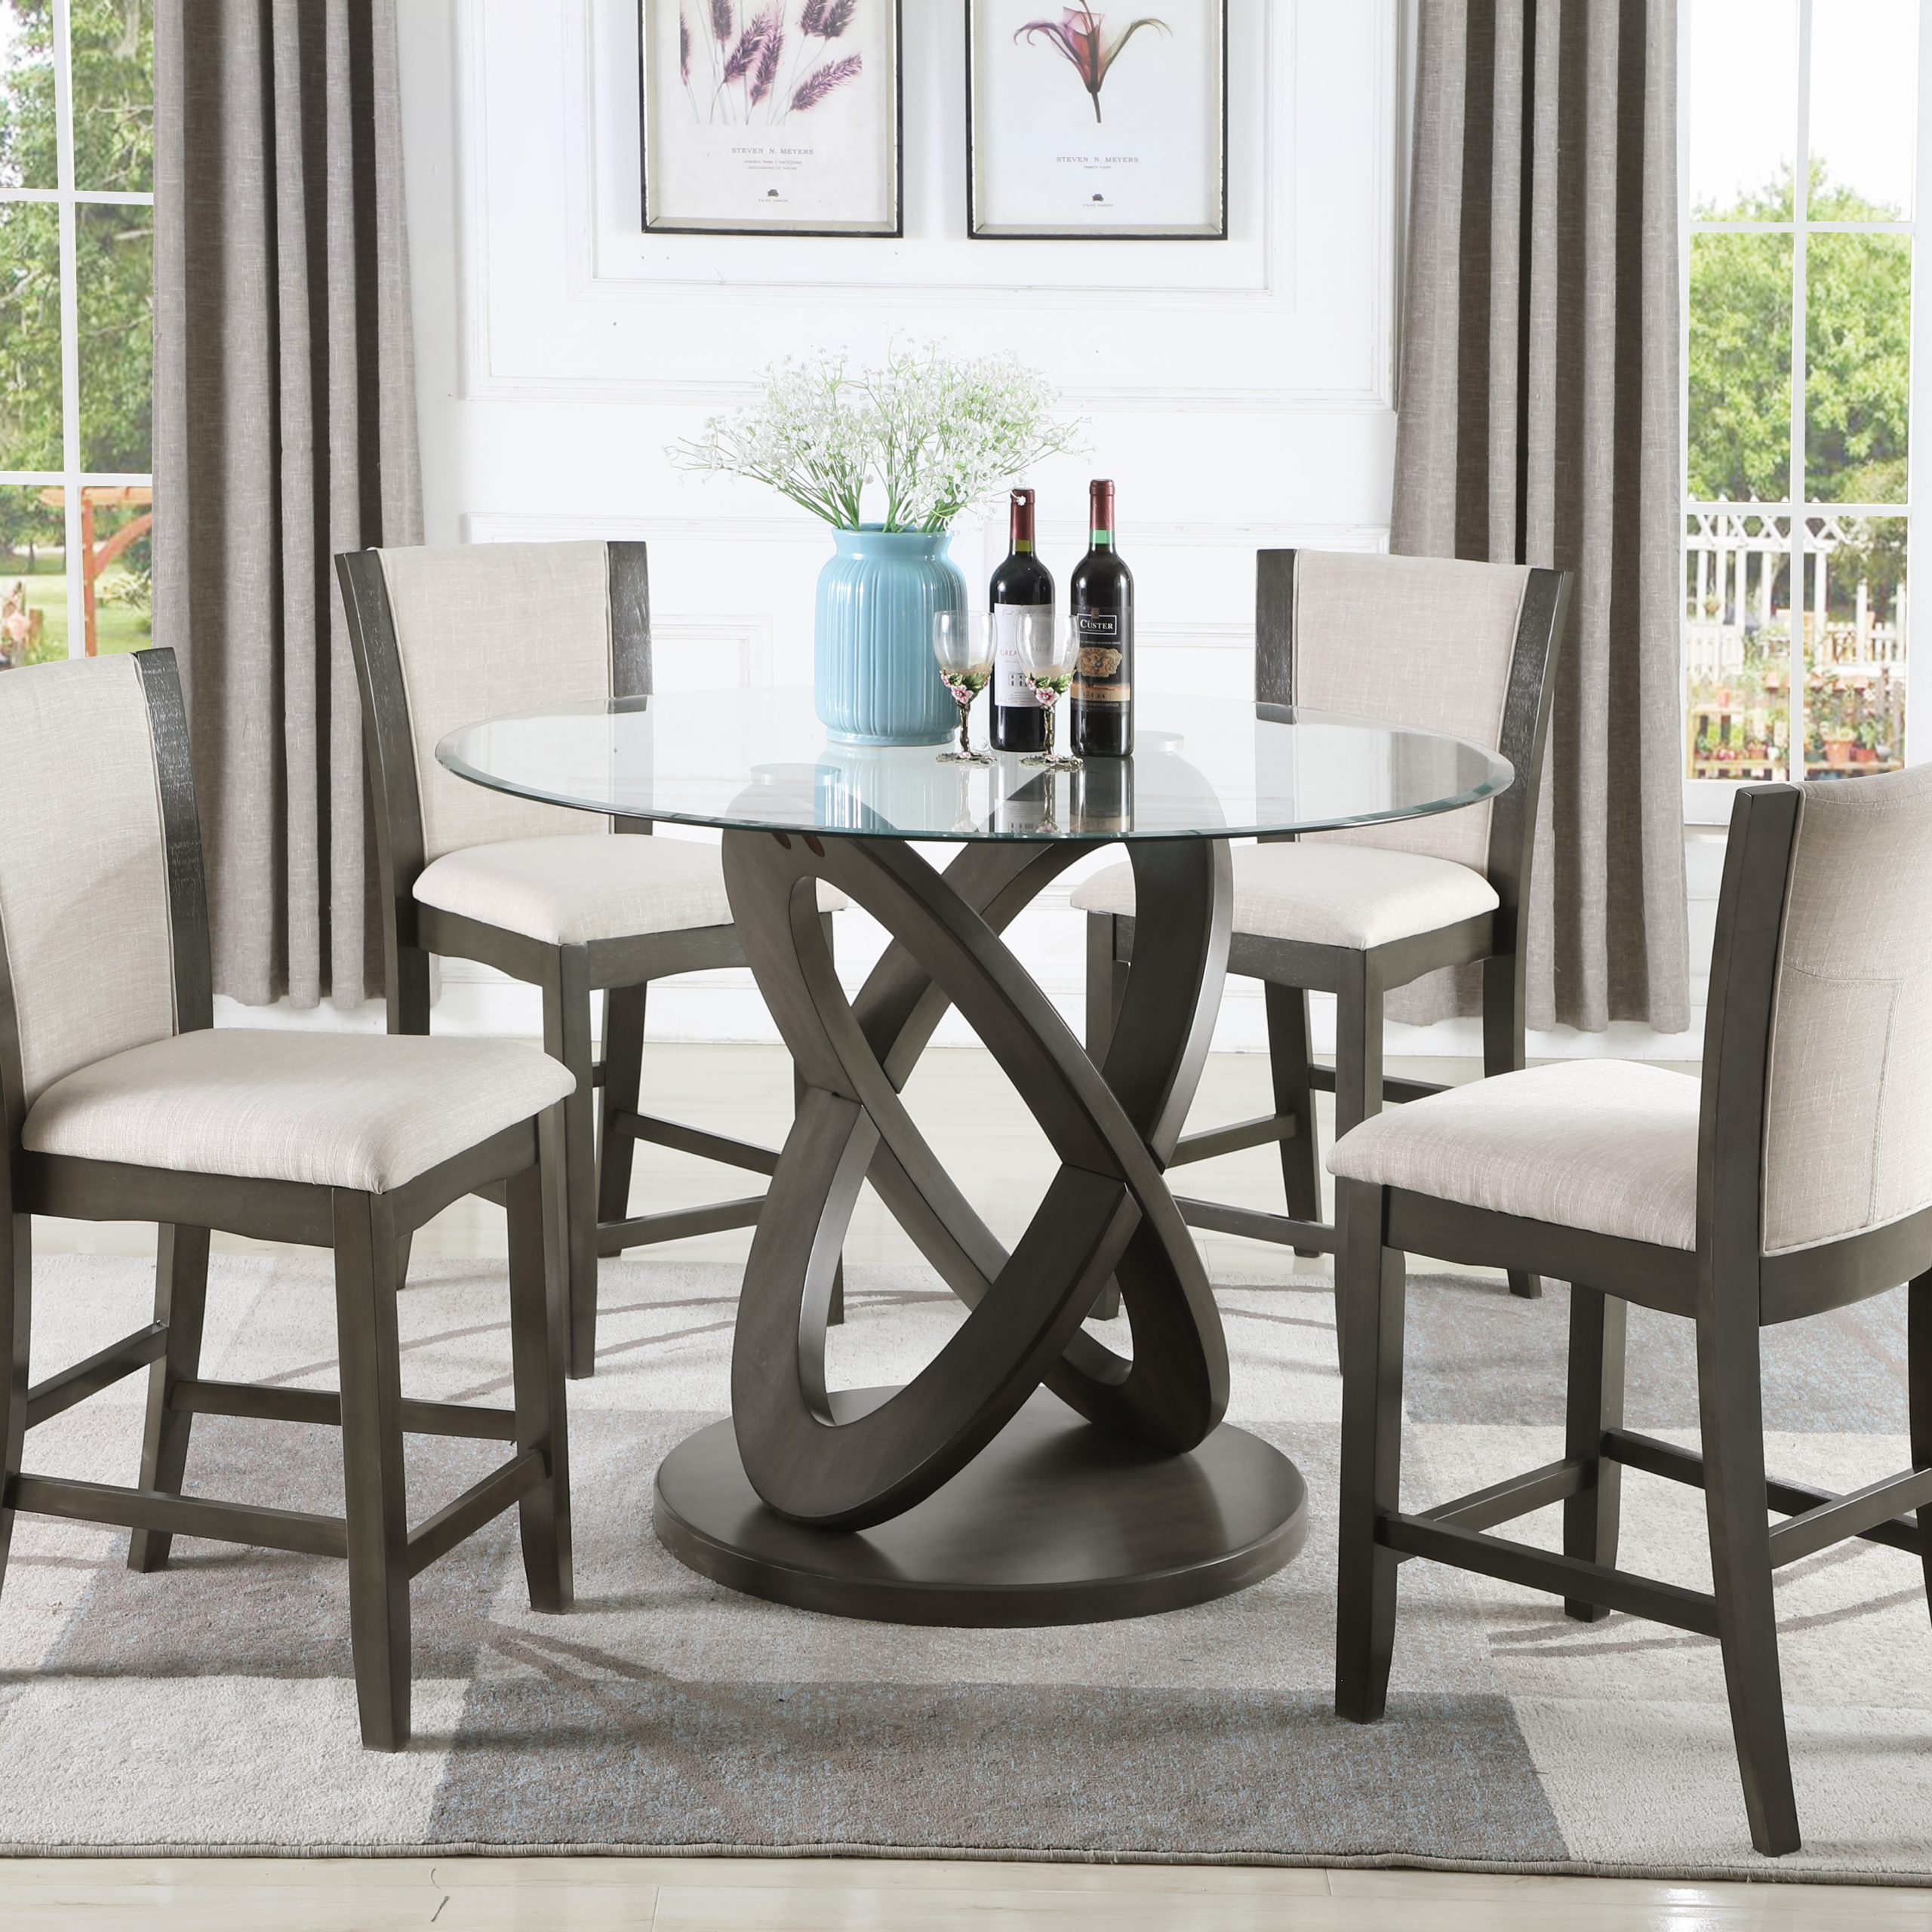 Roundhill Cicicol 5 Piece Glass Top Counter Height Dining Regarding Most Current Tudor City 28'' Dining Tables (Photo 12 of 15)